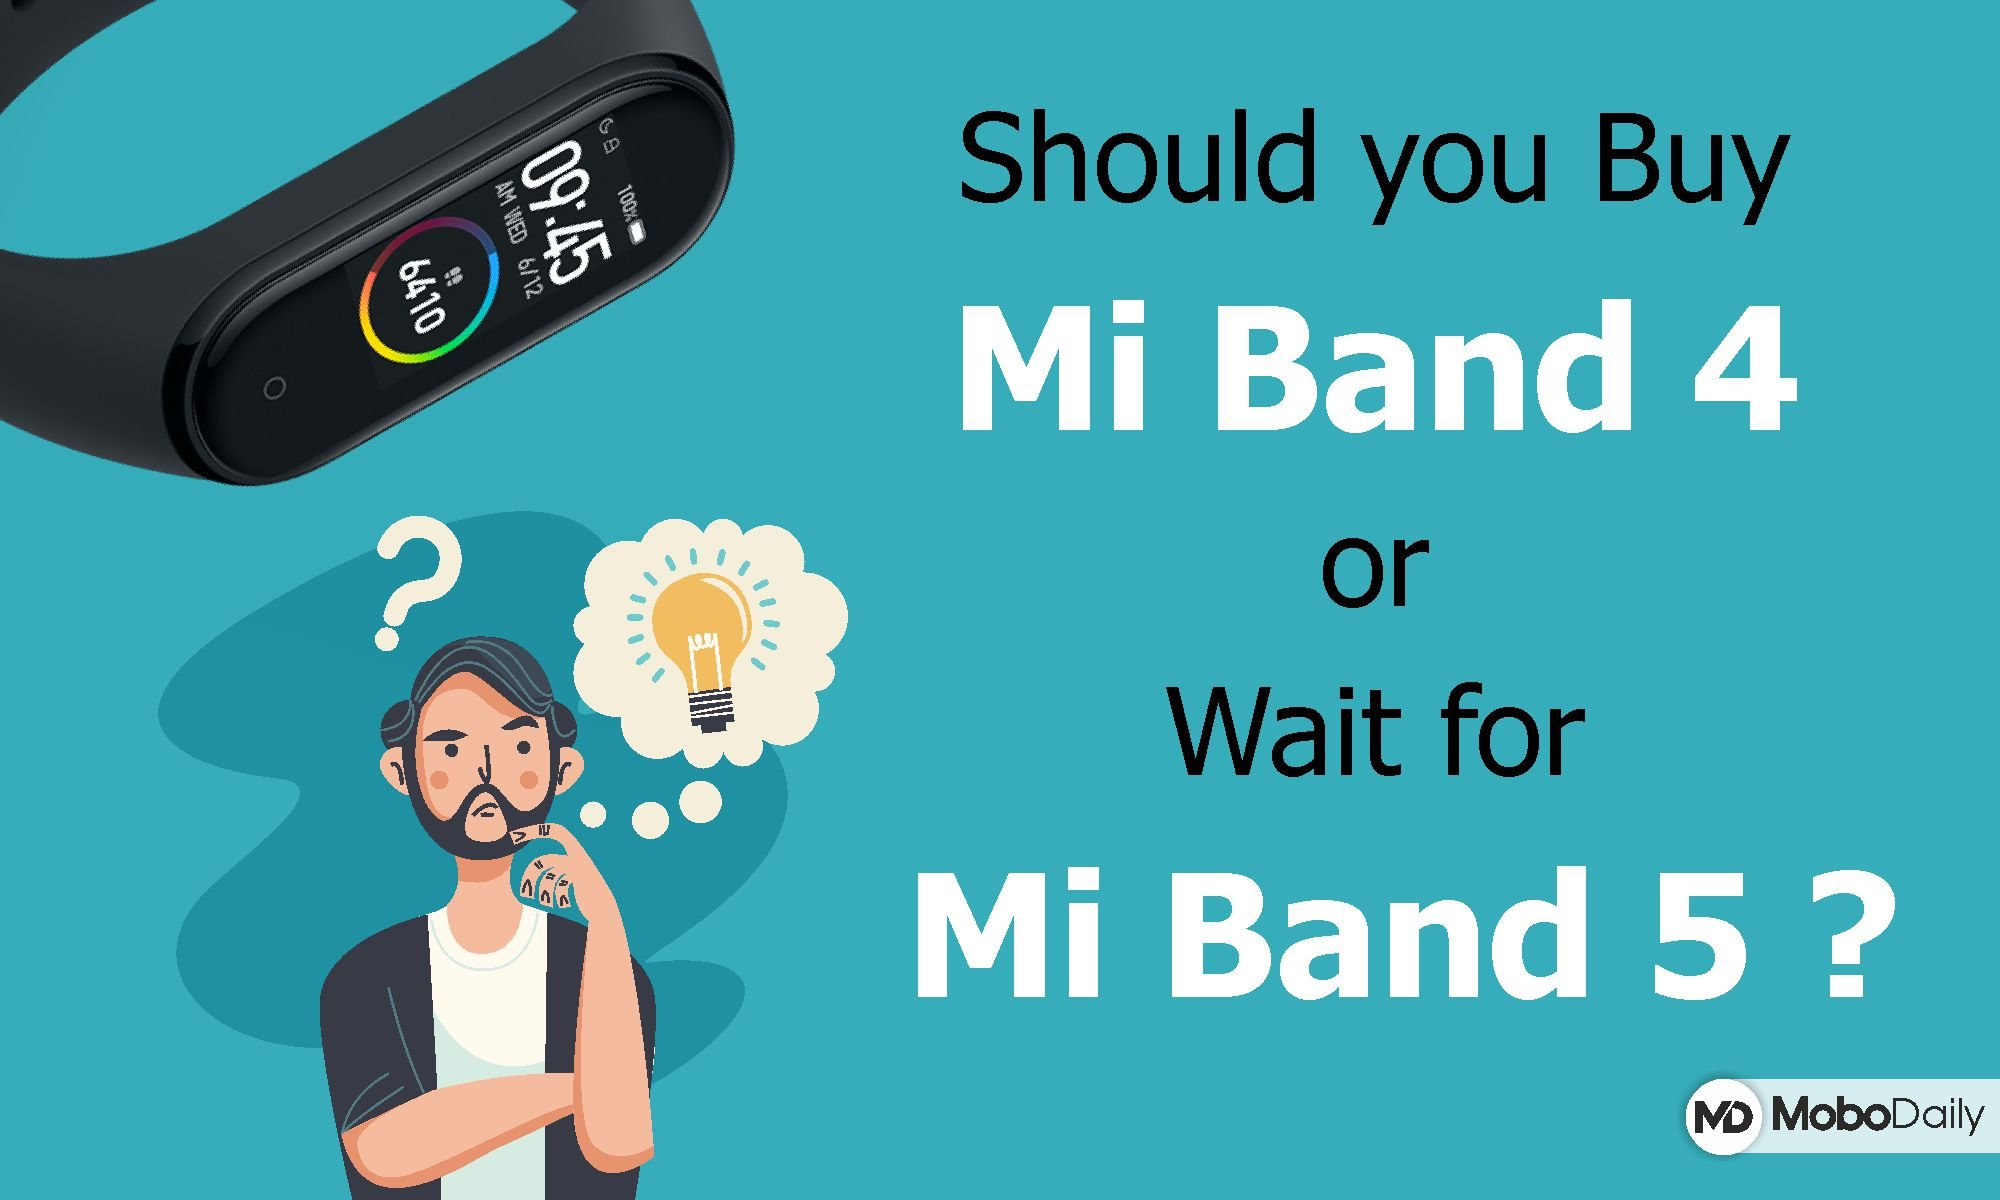 should you buy mi band 4 or wait for mi band 5